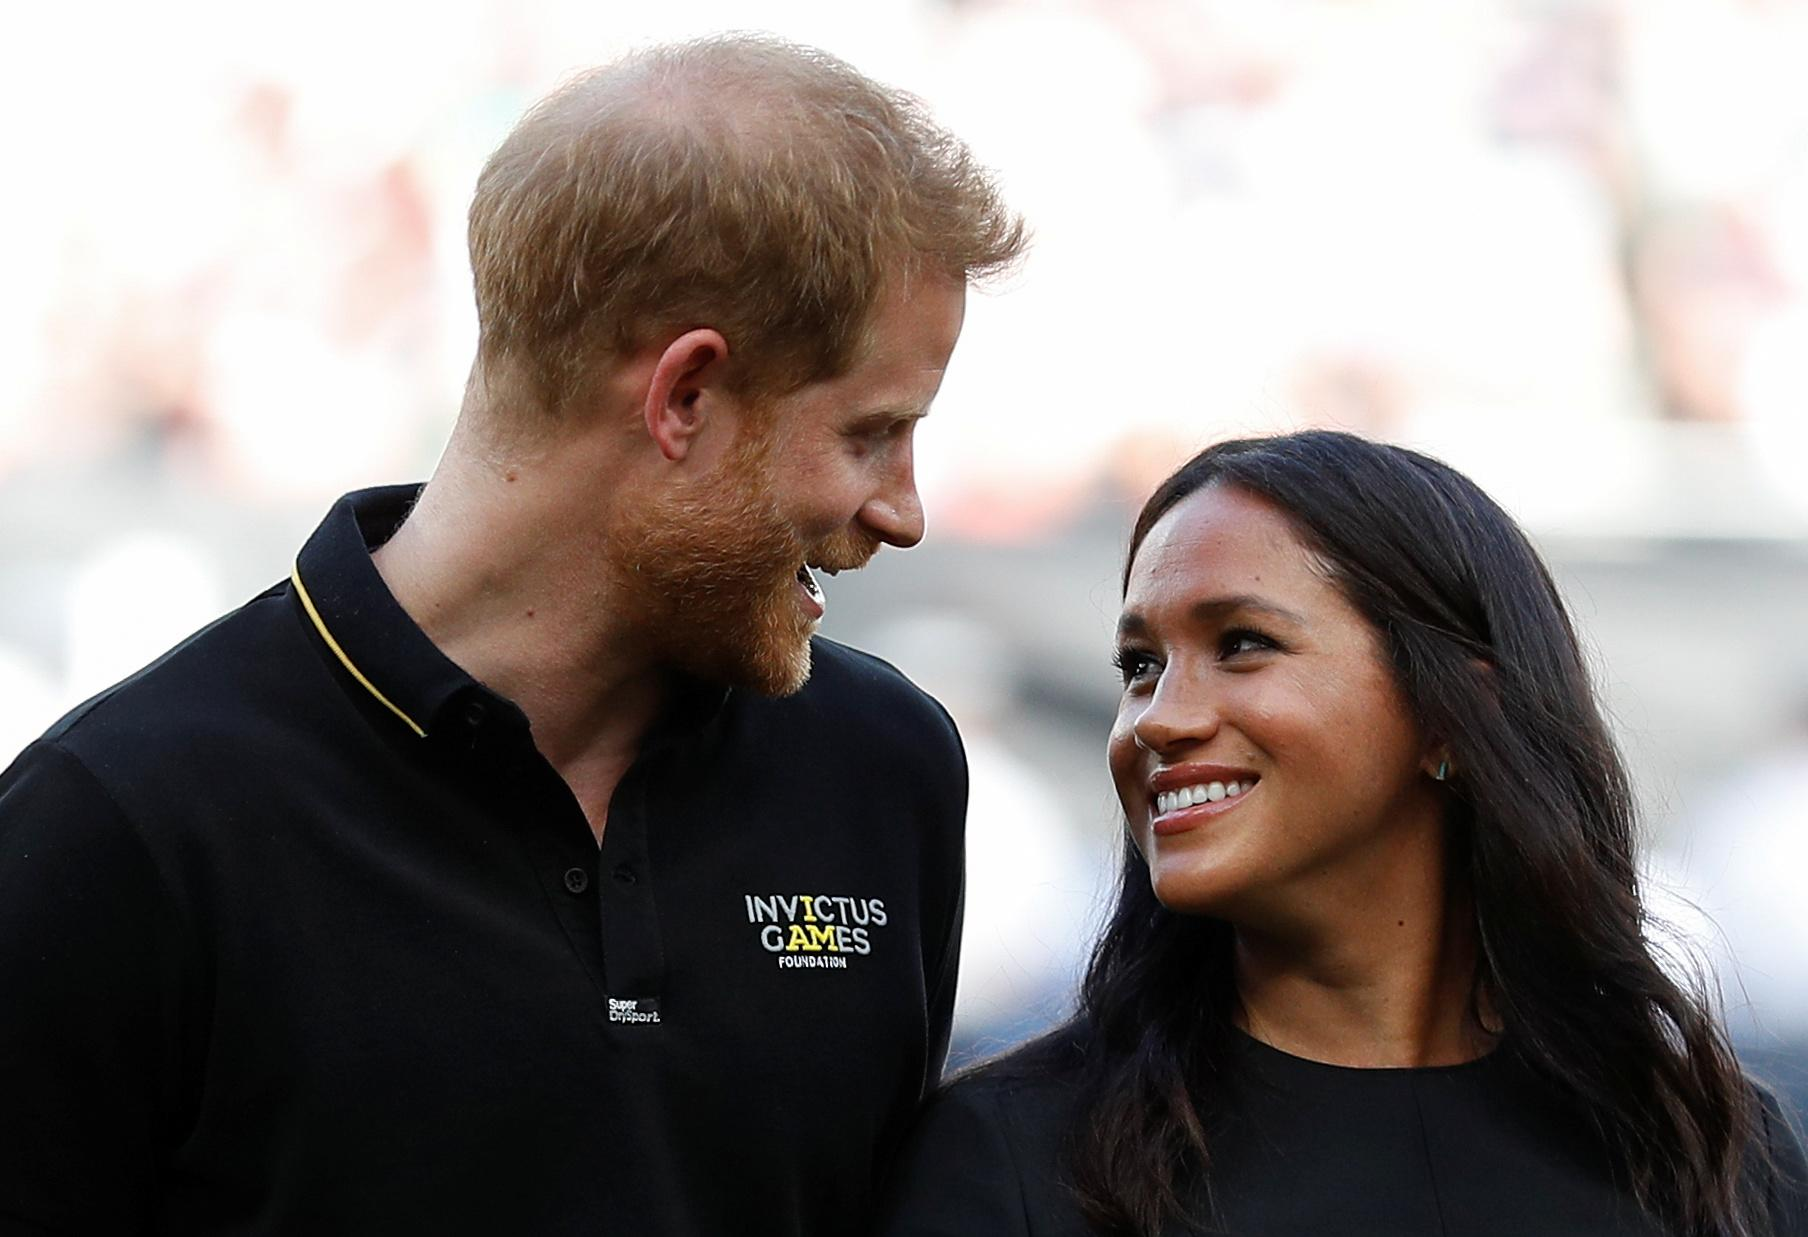 LONDON, ENGLAND - JUNE 29: Prince Harry, Duke of Sussex and Meghan, Duchess of Sussex attend the Boston Red Sox vs New York Yankees baseball game at London Stadium on June 29, 2019 in London, England. The game is in support of the Invictus Games Foundation. (Photo by Peter Nicholls - WPA Pool/Getty Images)